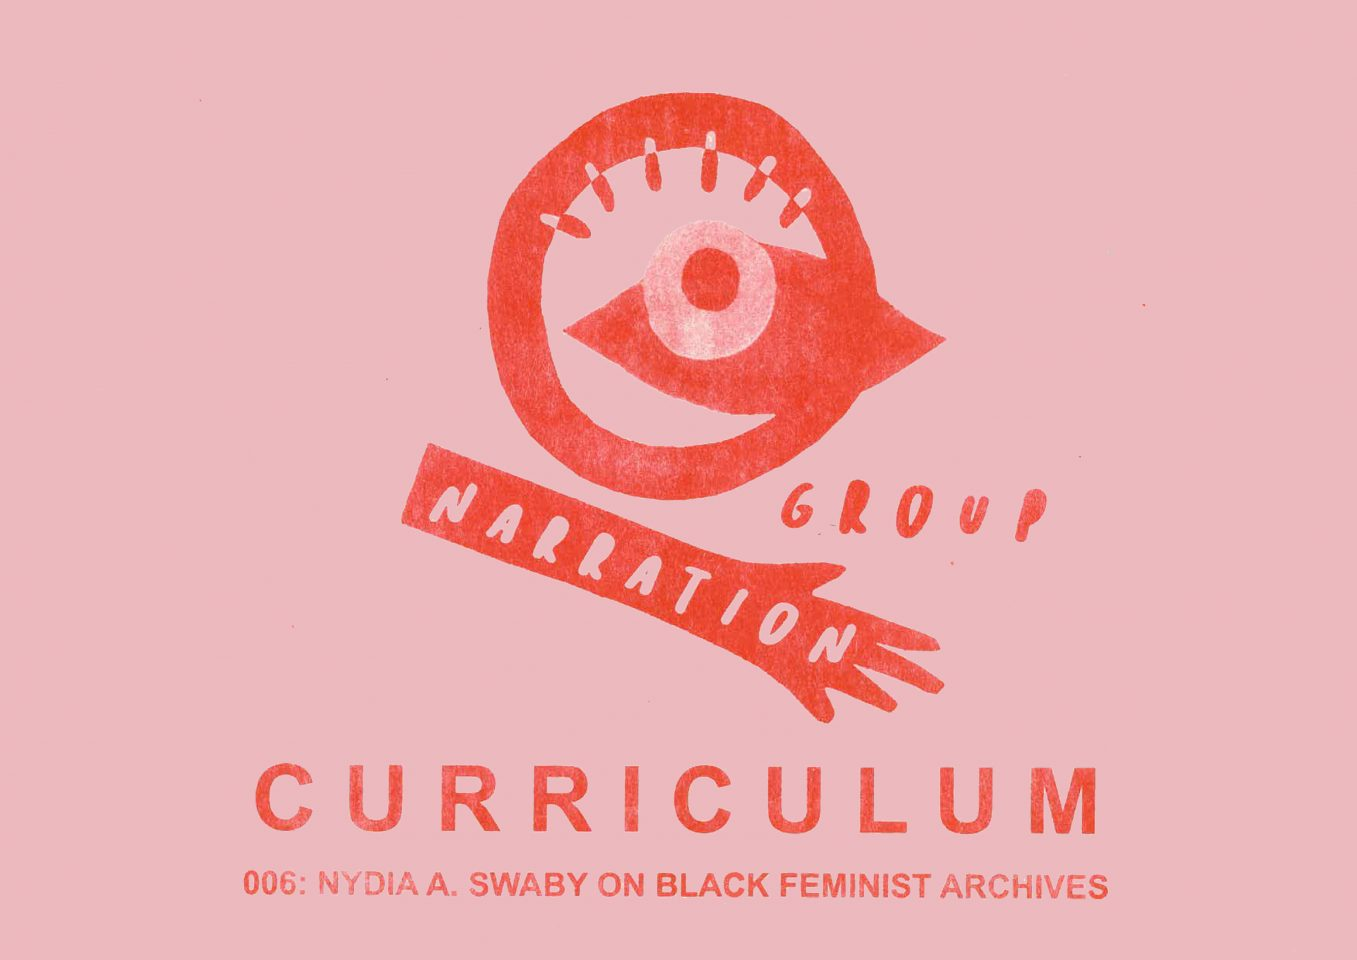 CURRICULUM 006: WORKSHOP: Nydia A. Swaby on Black Feminist Archives